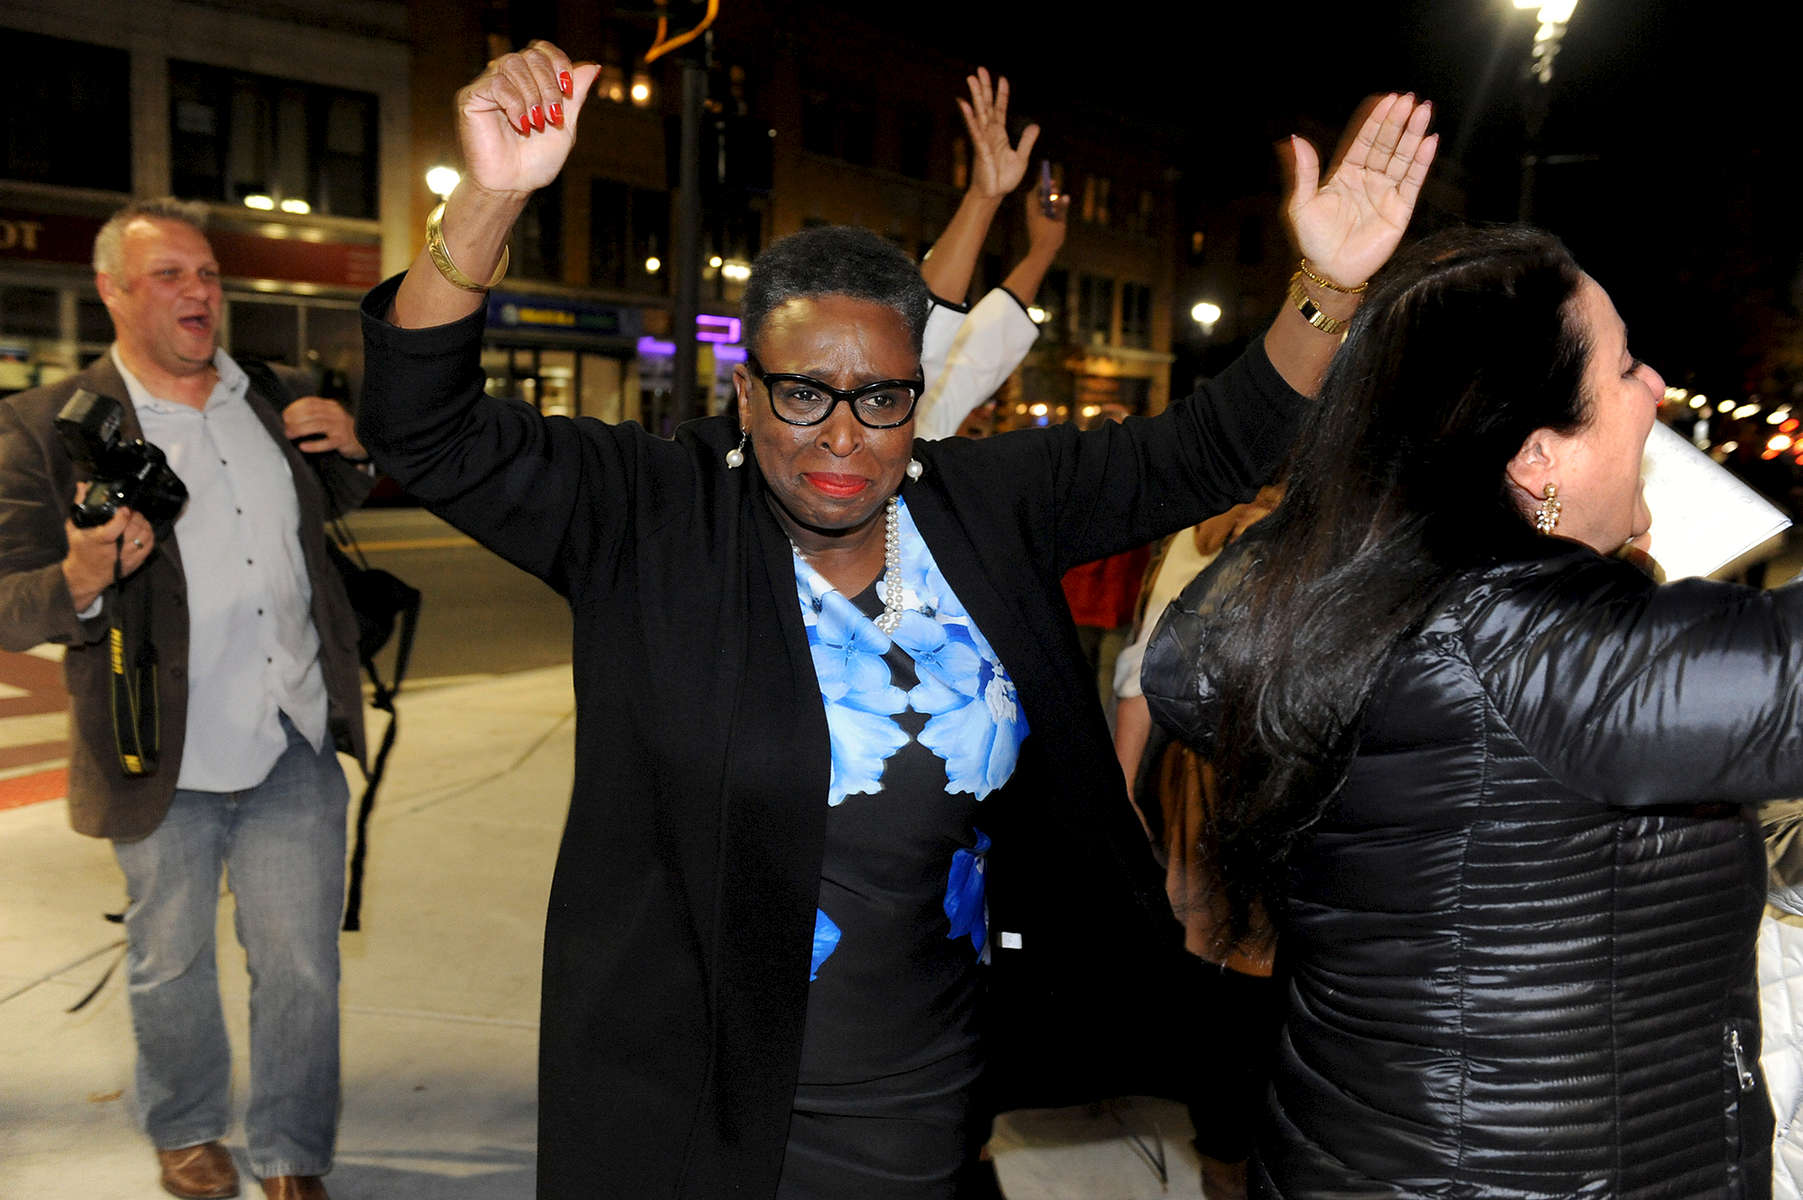 11/7/17  FRAMINGHAM-- Newly elected Framingham Mayor Yvonne Spicer walks to the Memorial Building Tuesday night. [Daily News and Wicked Local Staff Photo/Art Illman]